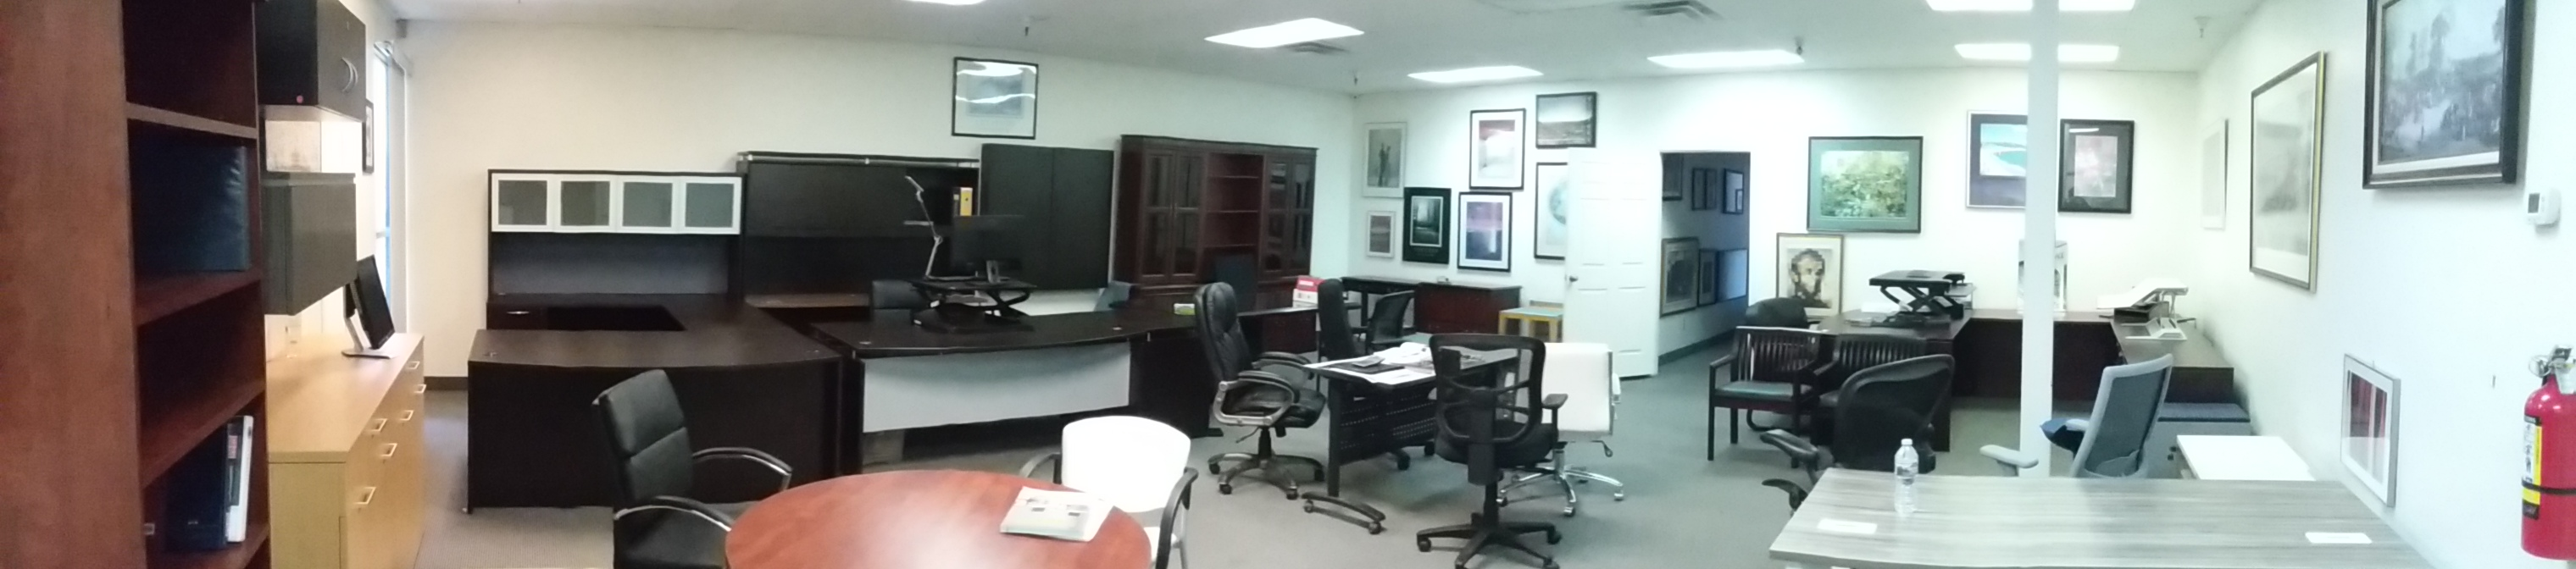 Awe Inspiring New Used Reconditioned Office Furniture We Offer A Wide Interior Design Ideas Inamawefileorg